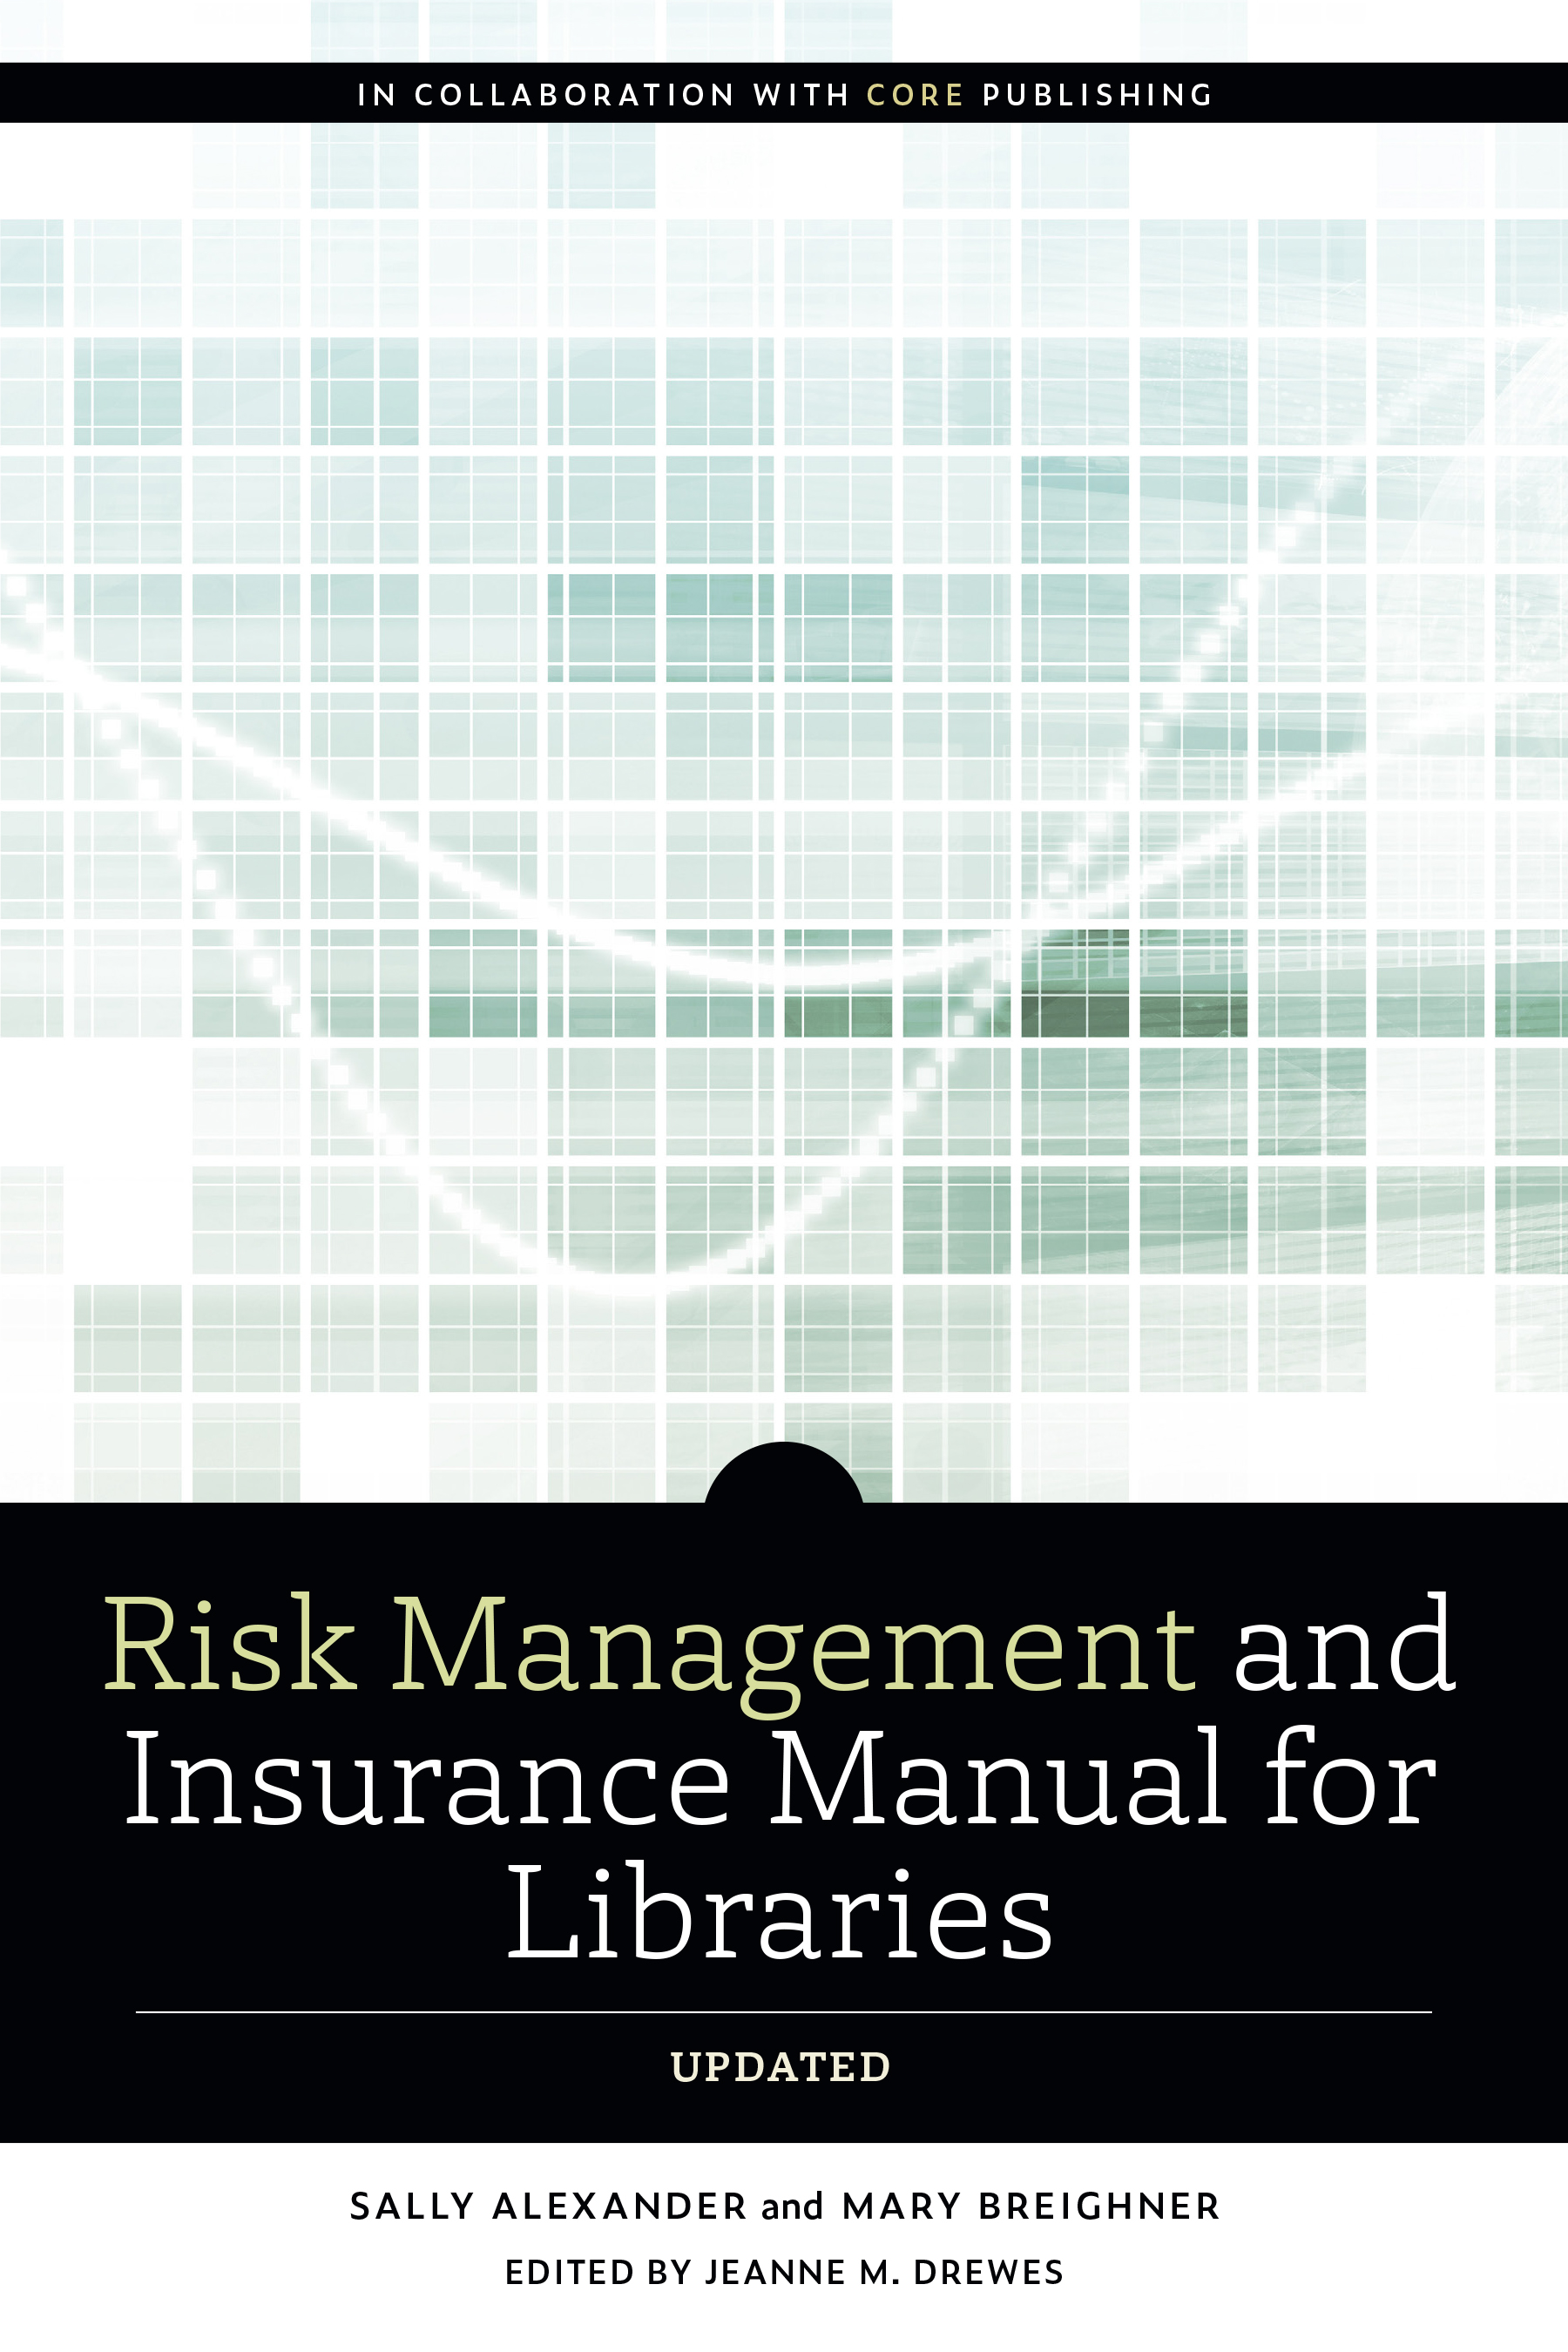 Image for Risk and Insurance Management Manual for Libraries, Updated